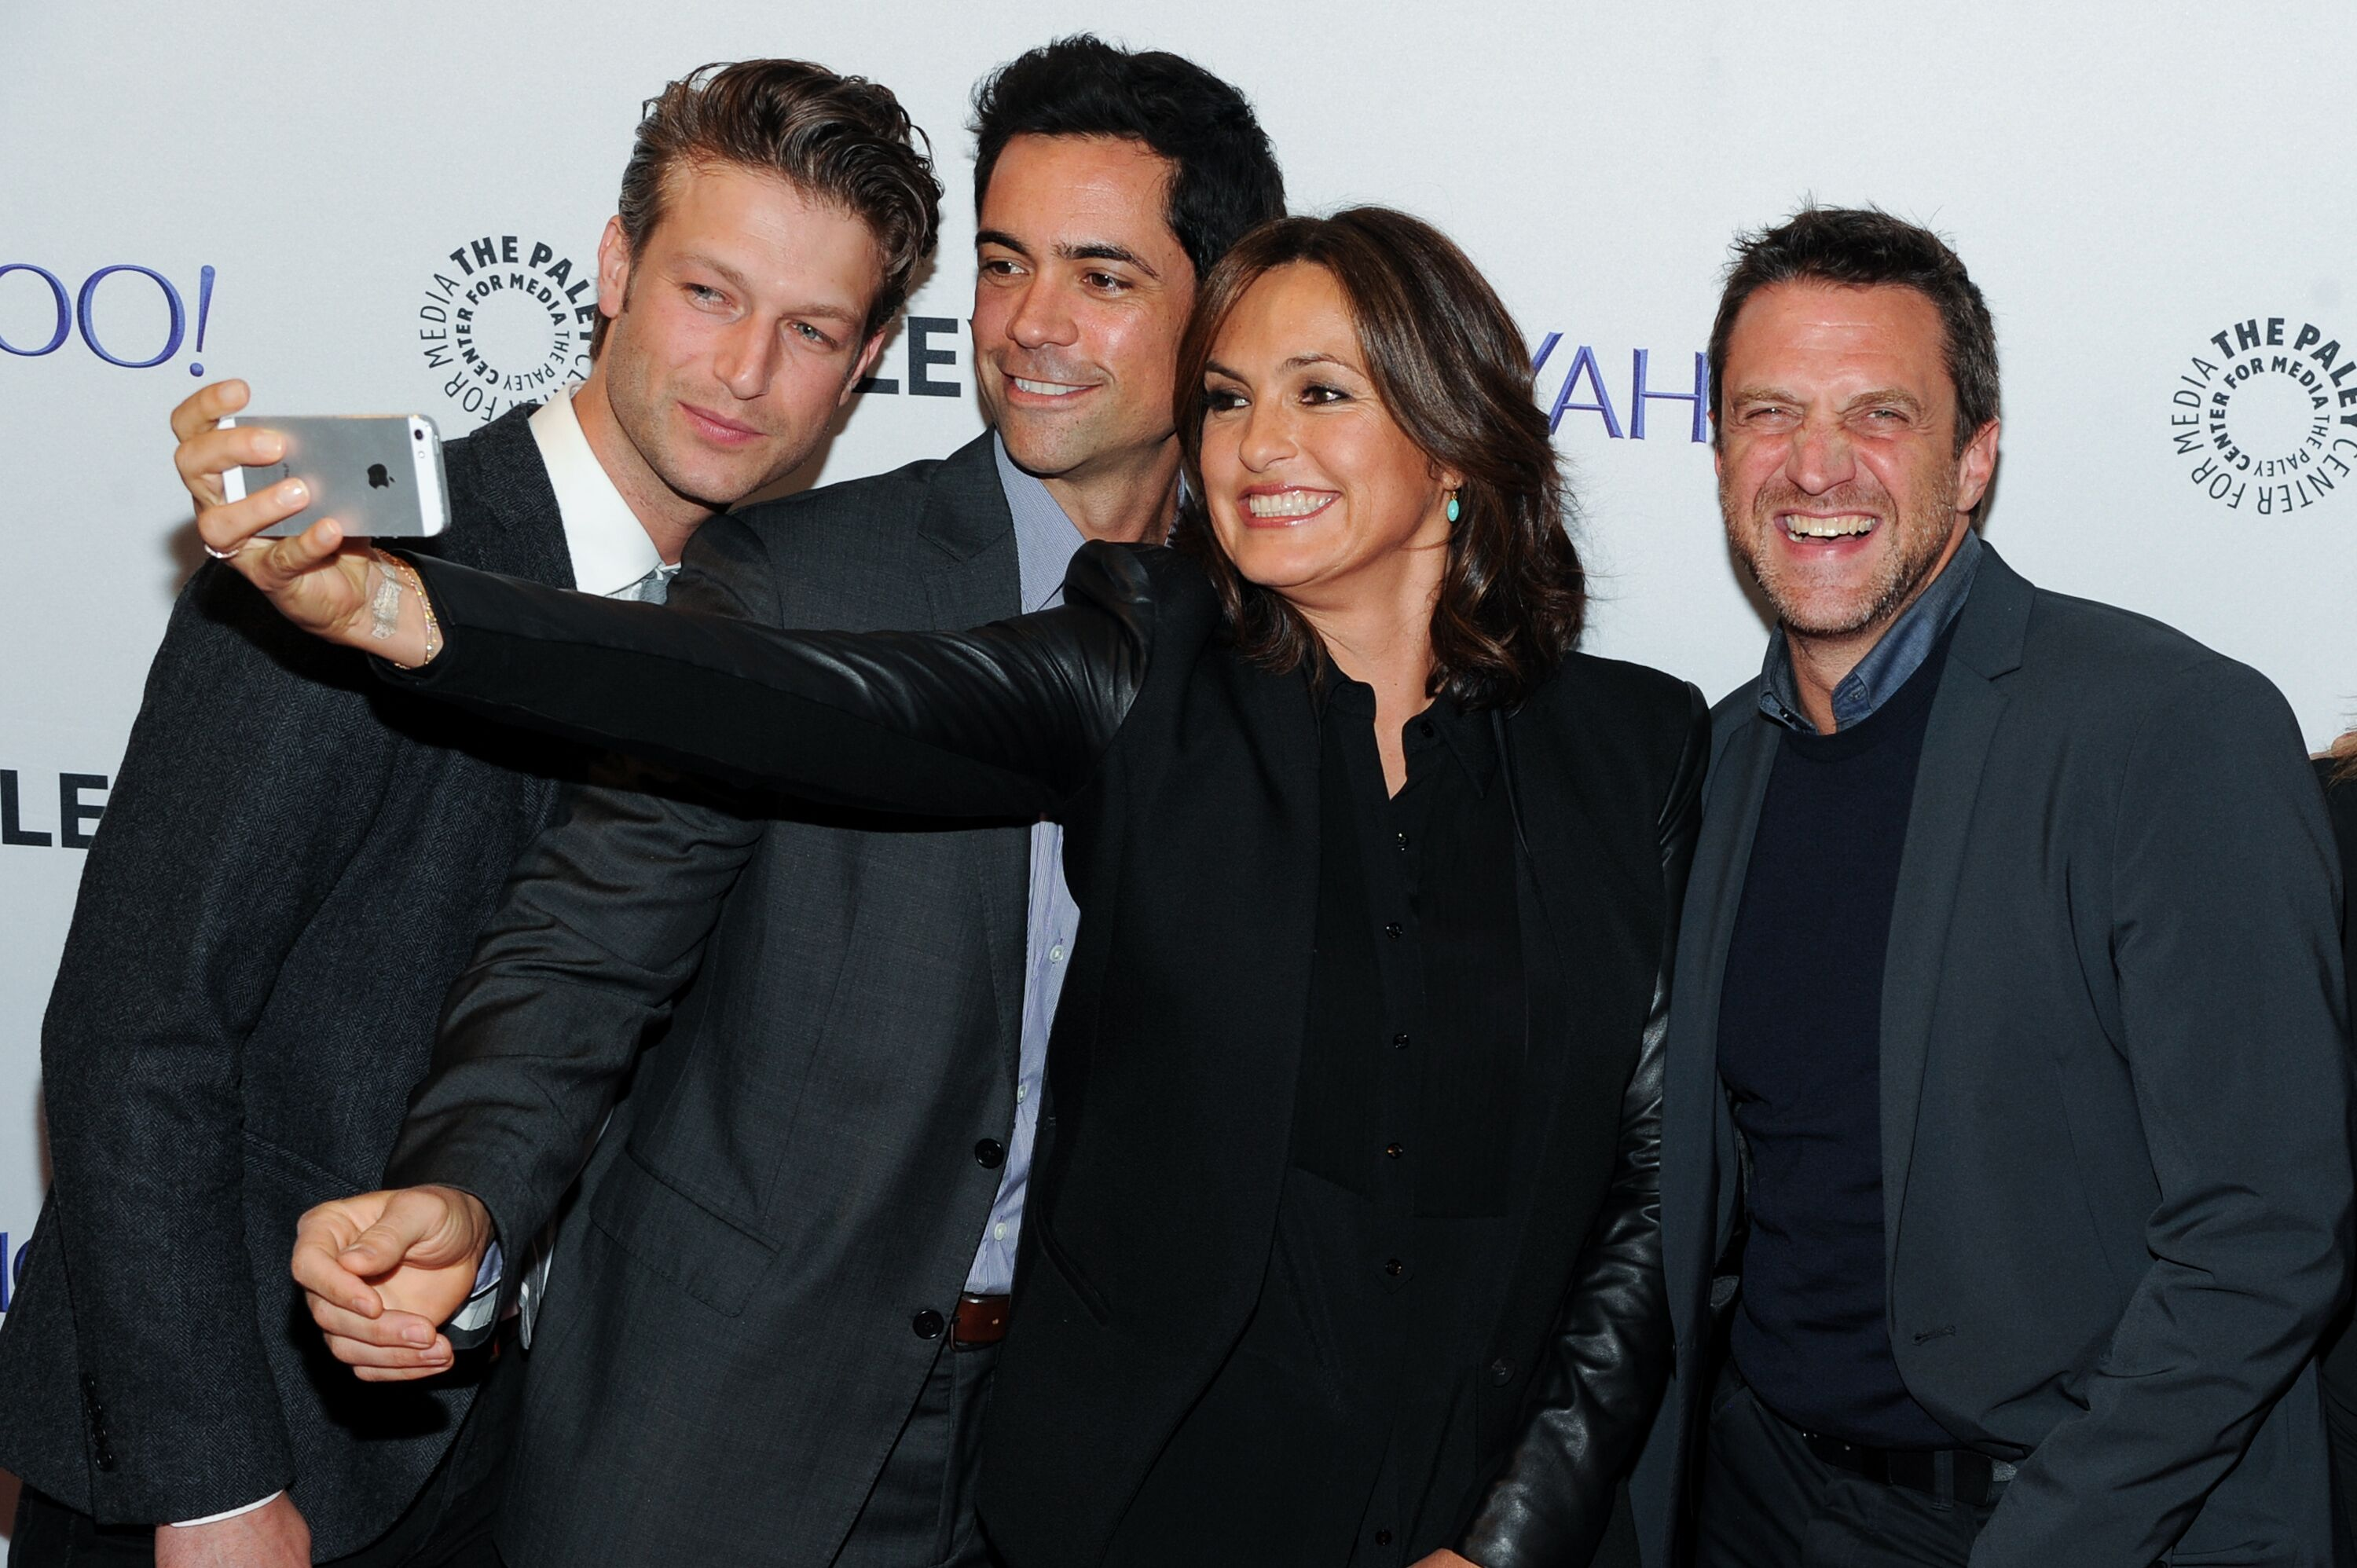 """Peter Scanavino, Danny Pino, Mariska Hargitay and Raul Esparza at the 2nd Annual Paleyfest """"New York Presents; Law & Order: SVU"""" in 2014 